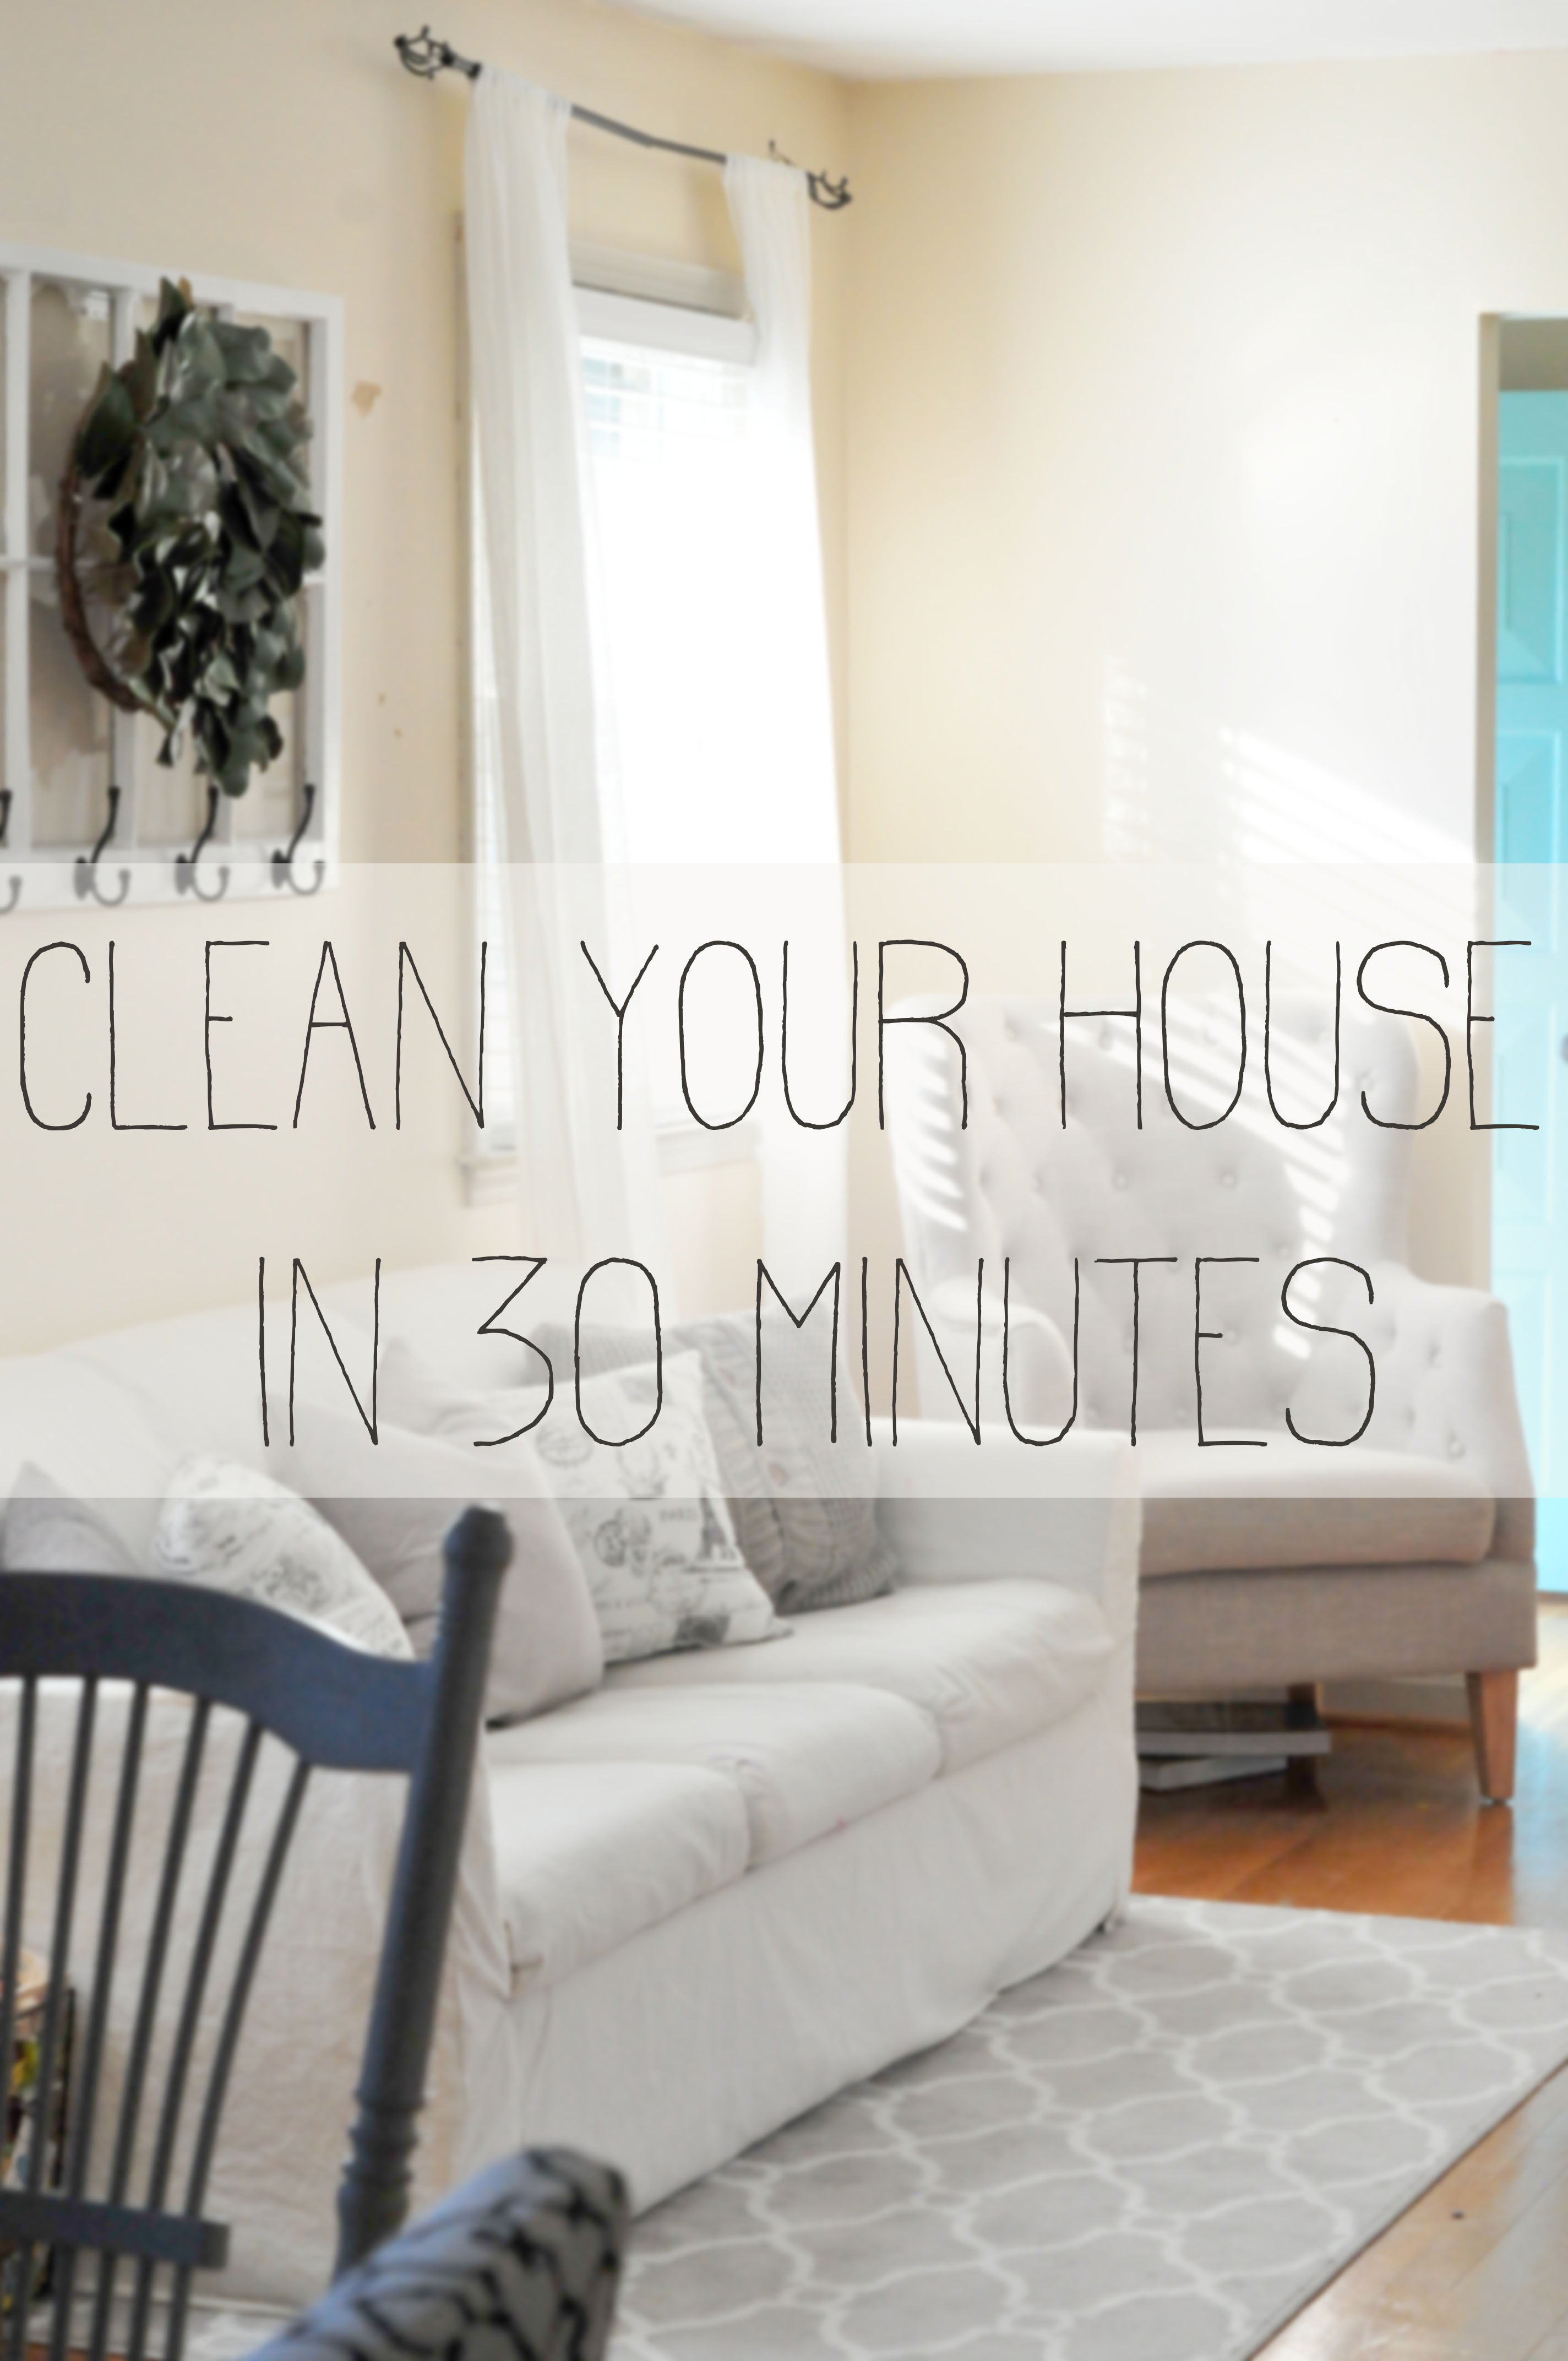 Clean Your House in 30 Minutes